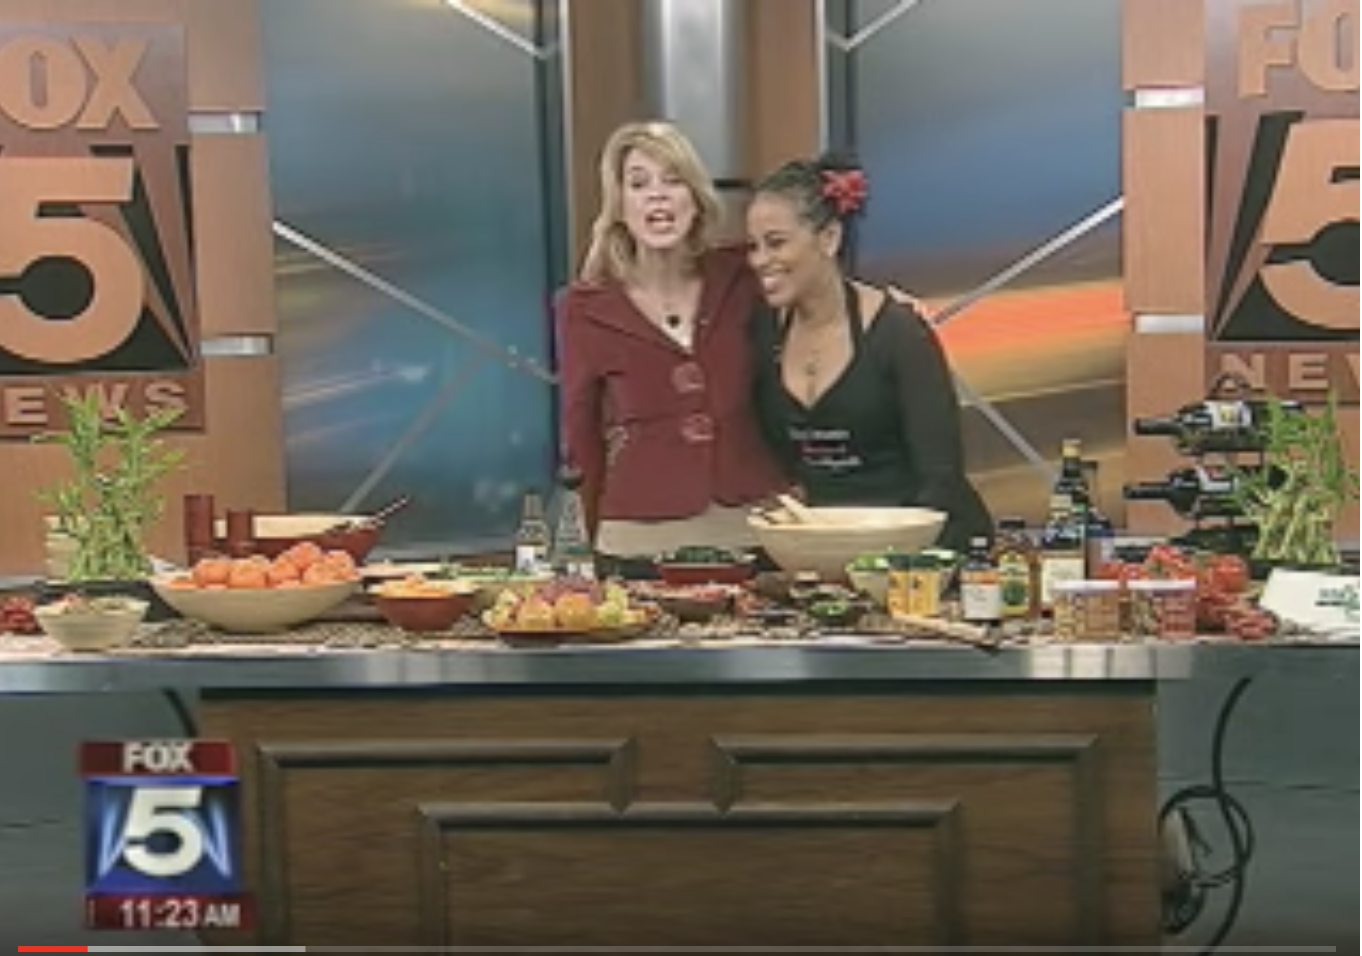 Healthy Greens Cooking Demo - Sunyatta whips up a yummy Kale salad with Teriyaki & Tangerine salsa on TV! Check out the segment on our Youtube channel.